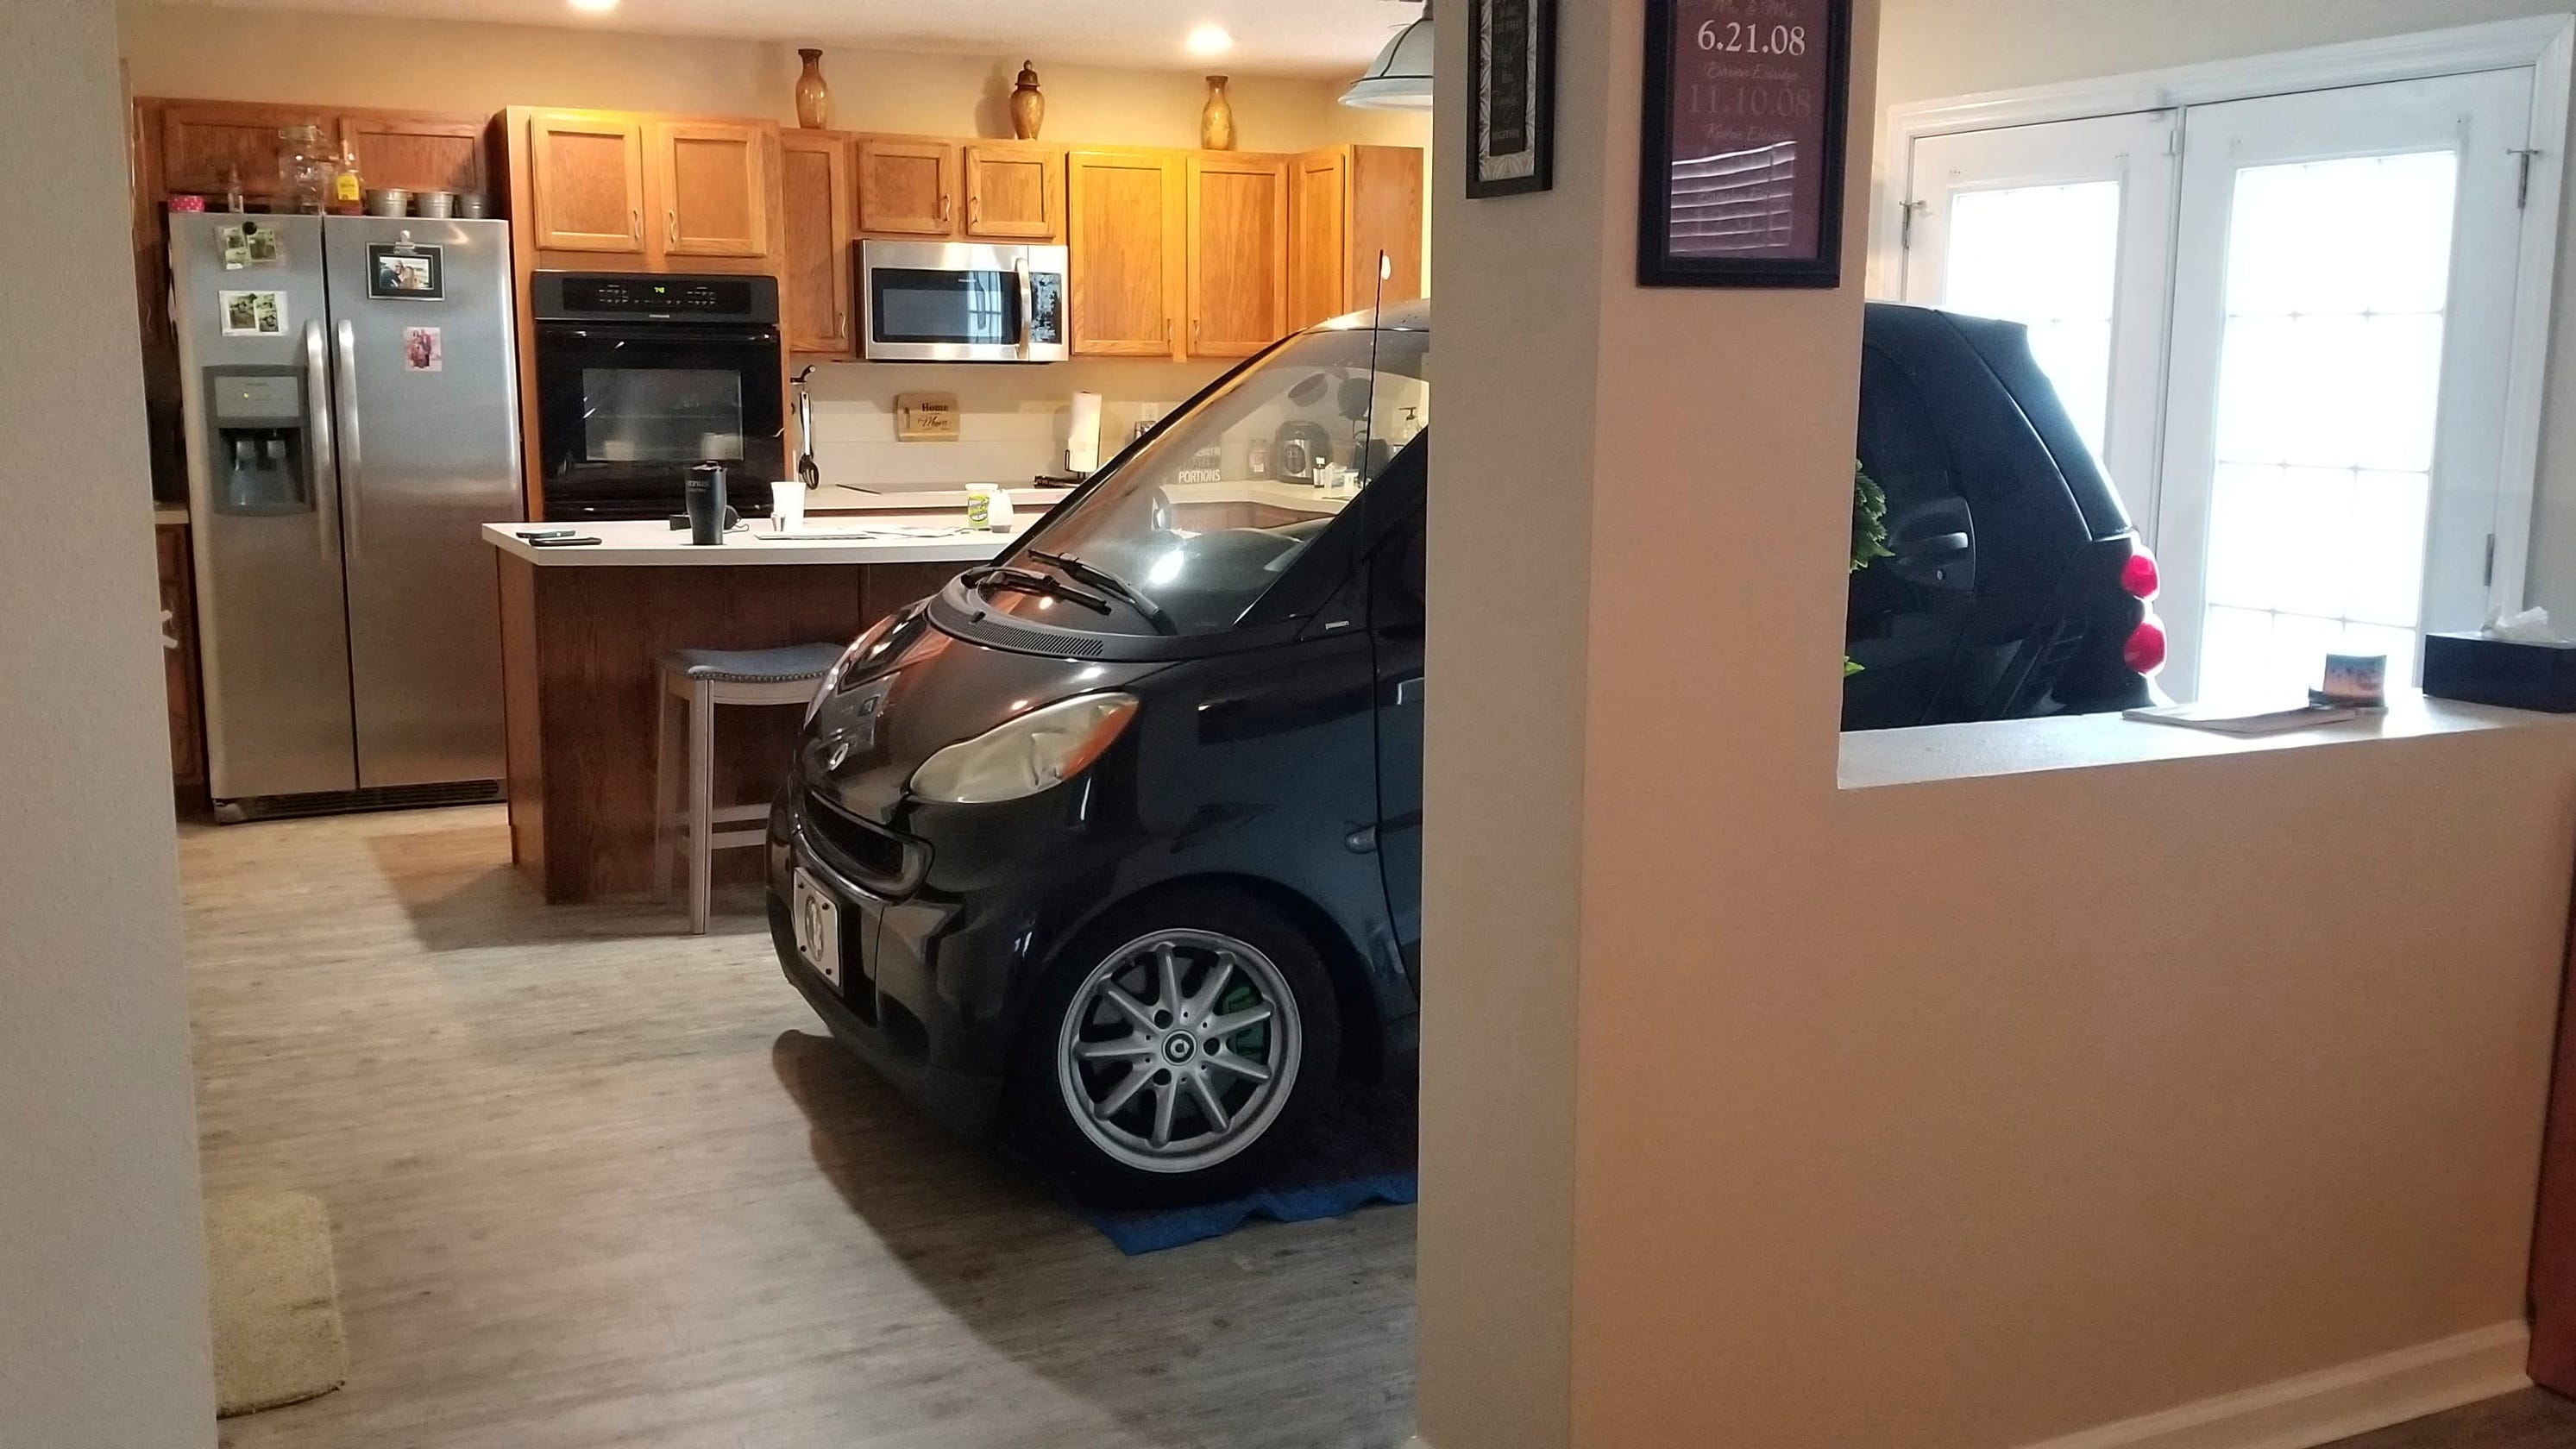 Florida State fan parks Smart car in kitchen before